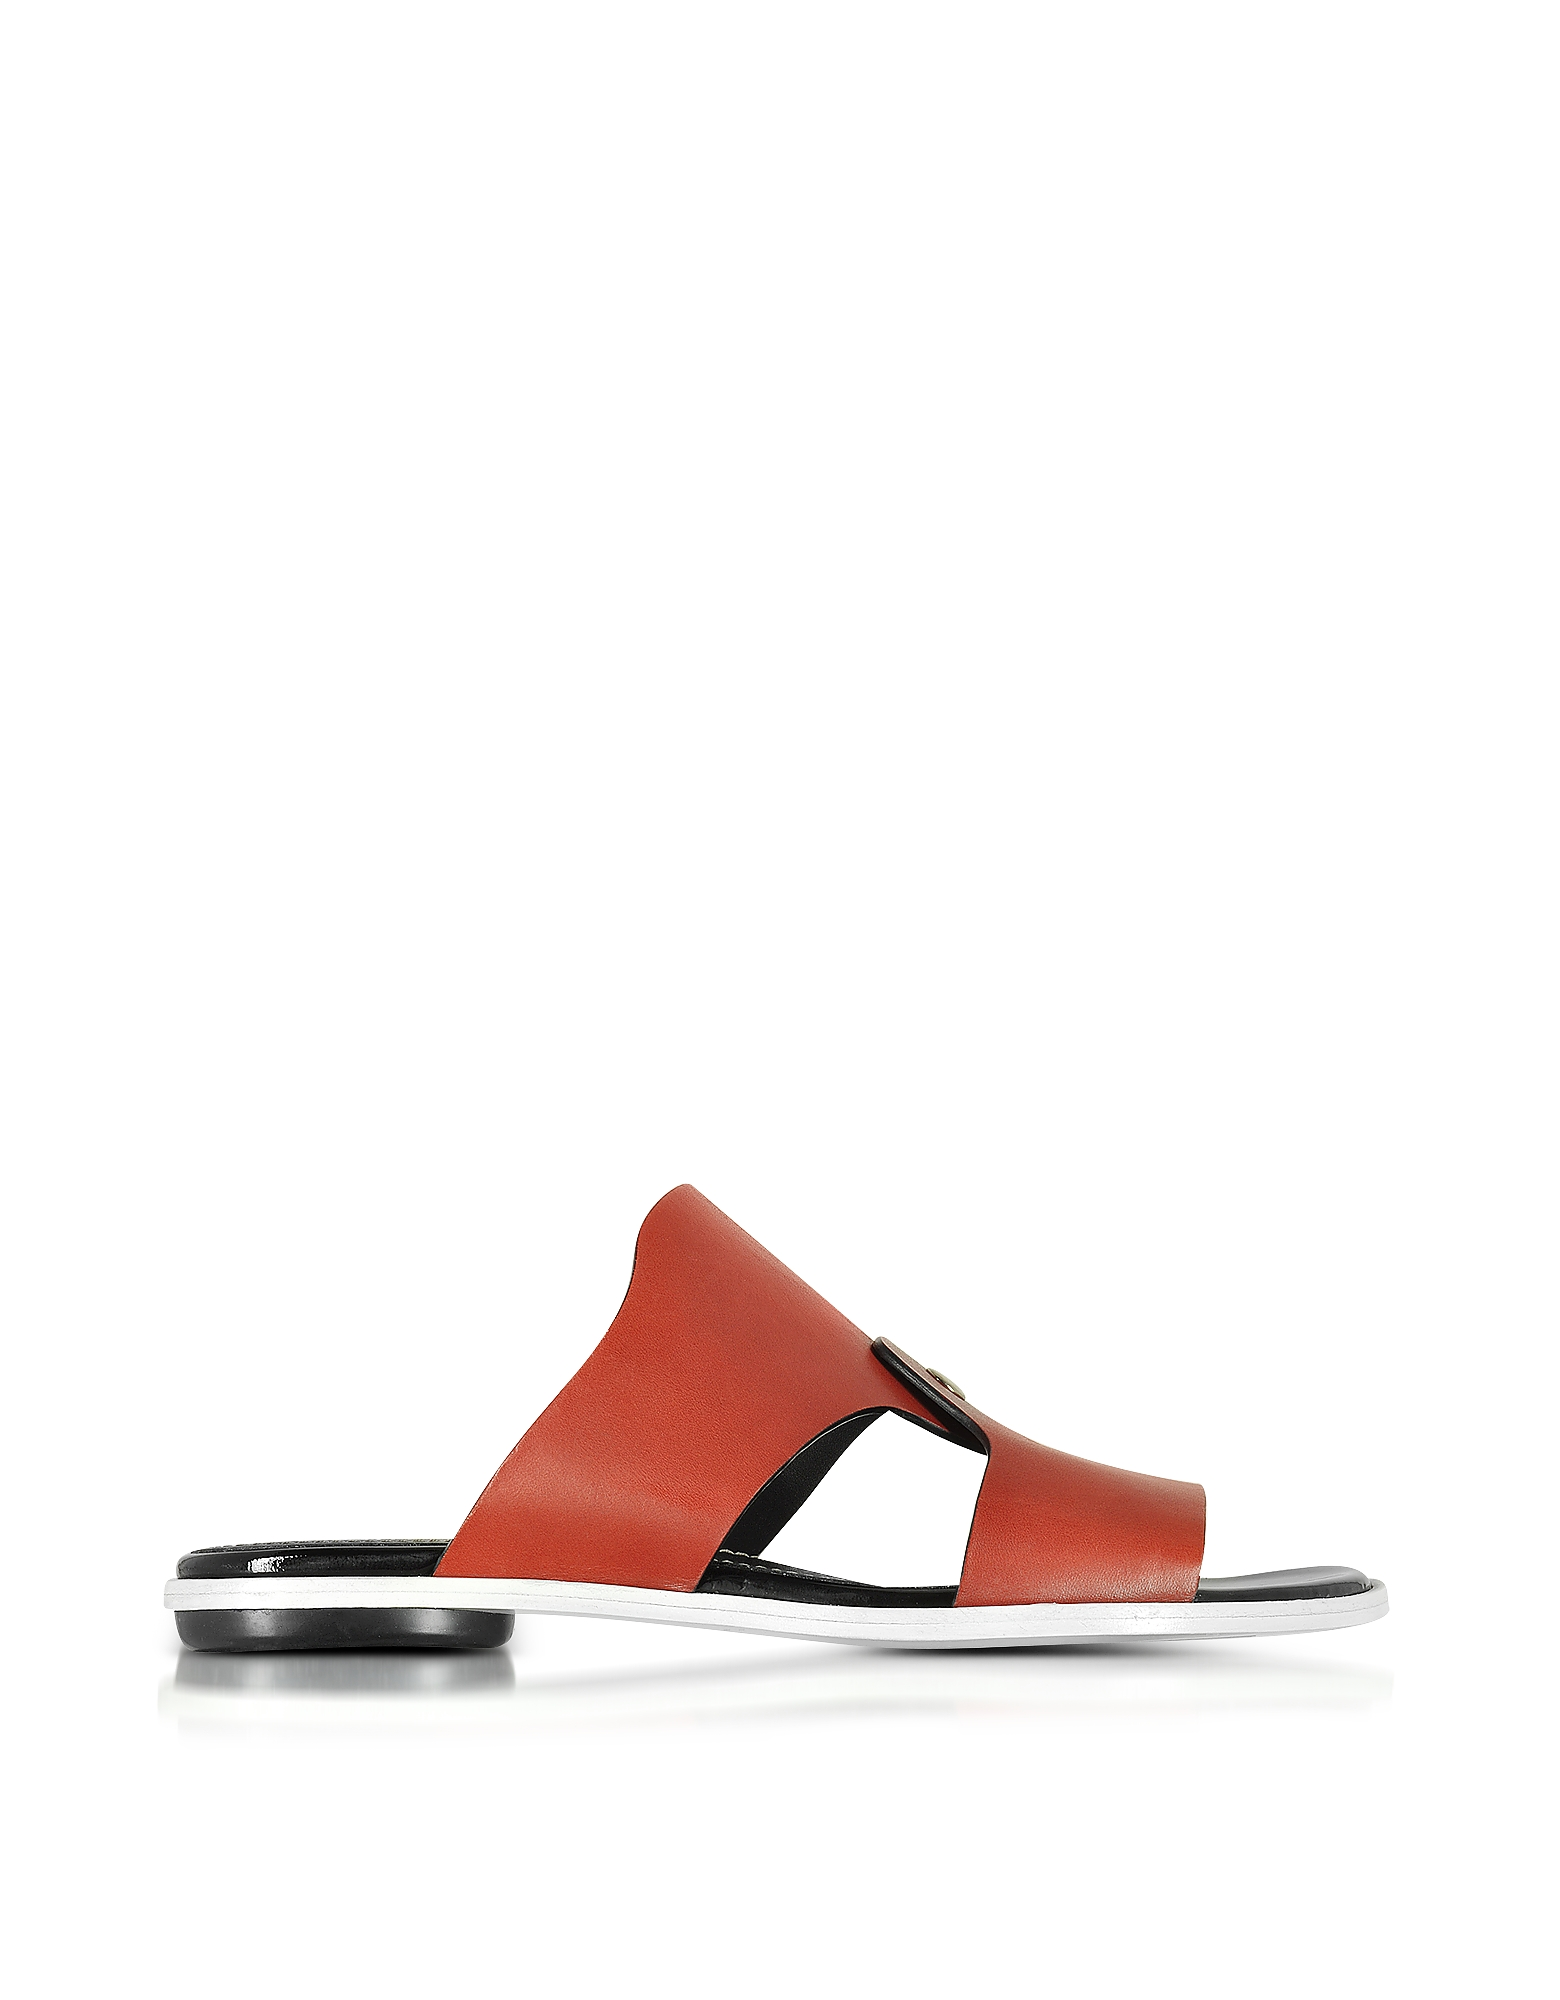 Proenza Schouler Shoes, Sienna Leather Flat Slide